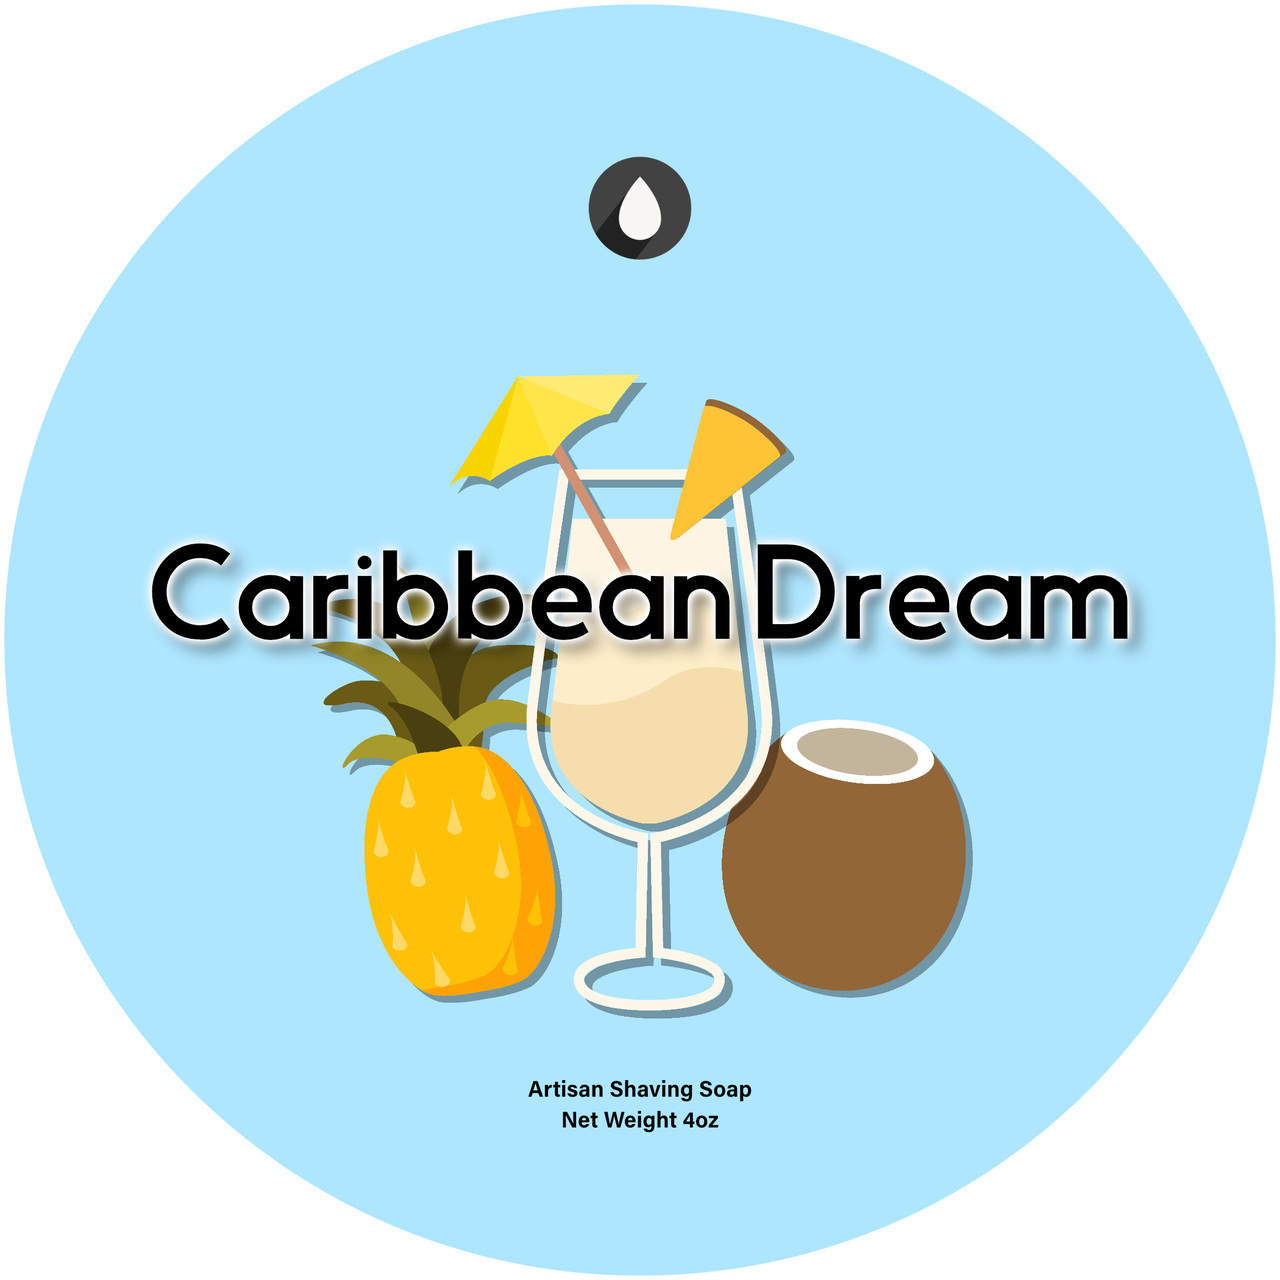 Chicago Grooming Co. (Formerly Oleo Soapworks) - Caribbean Dream - Soap image